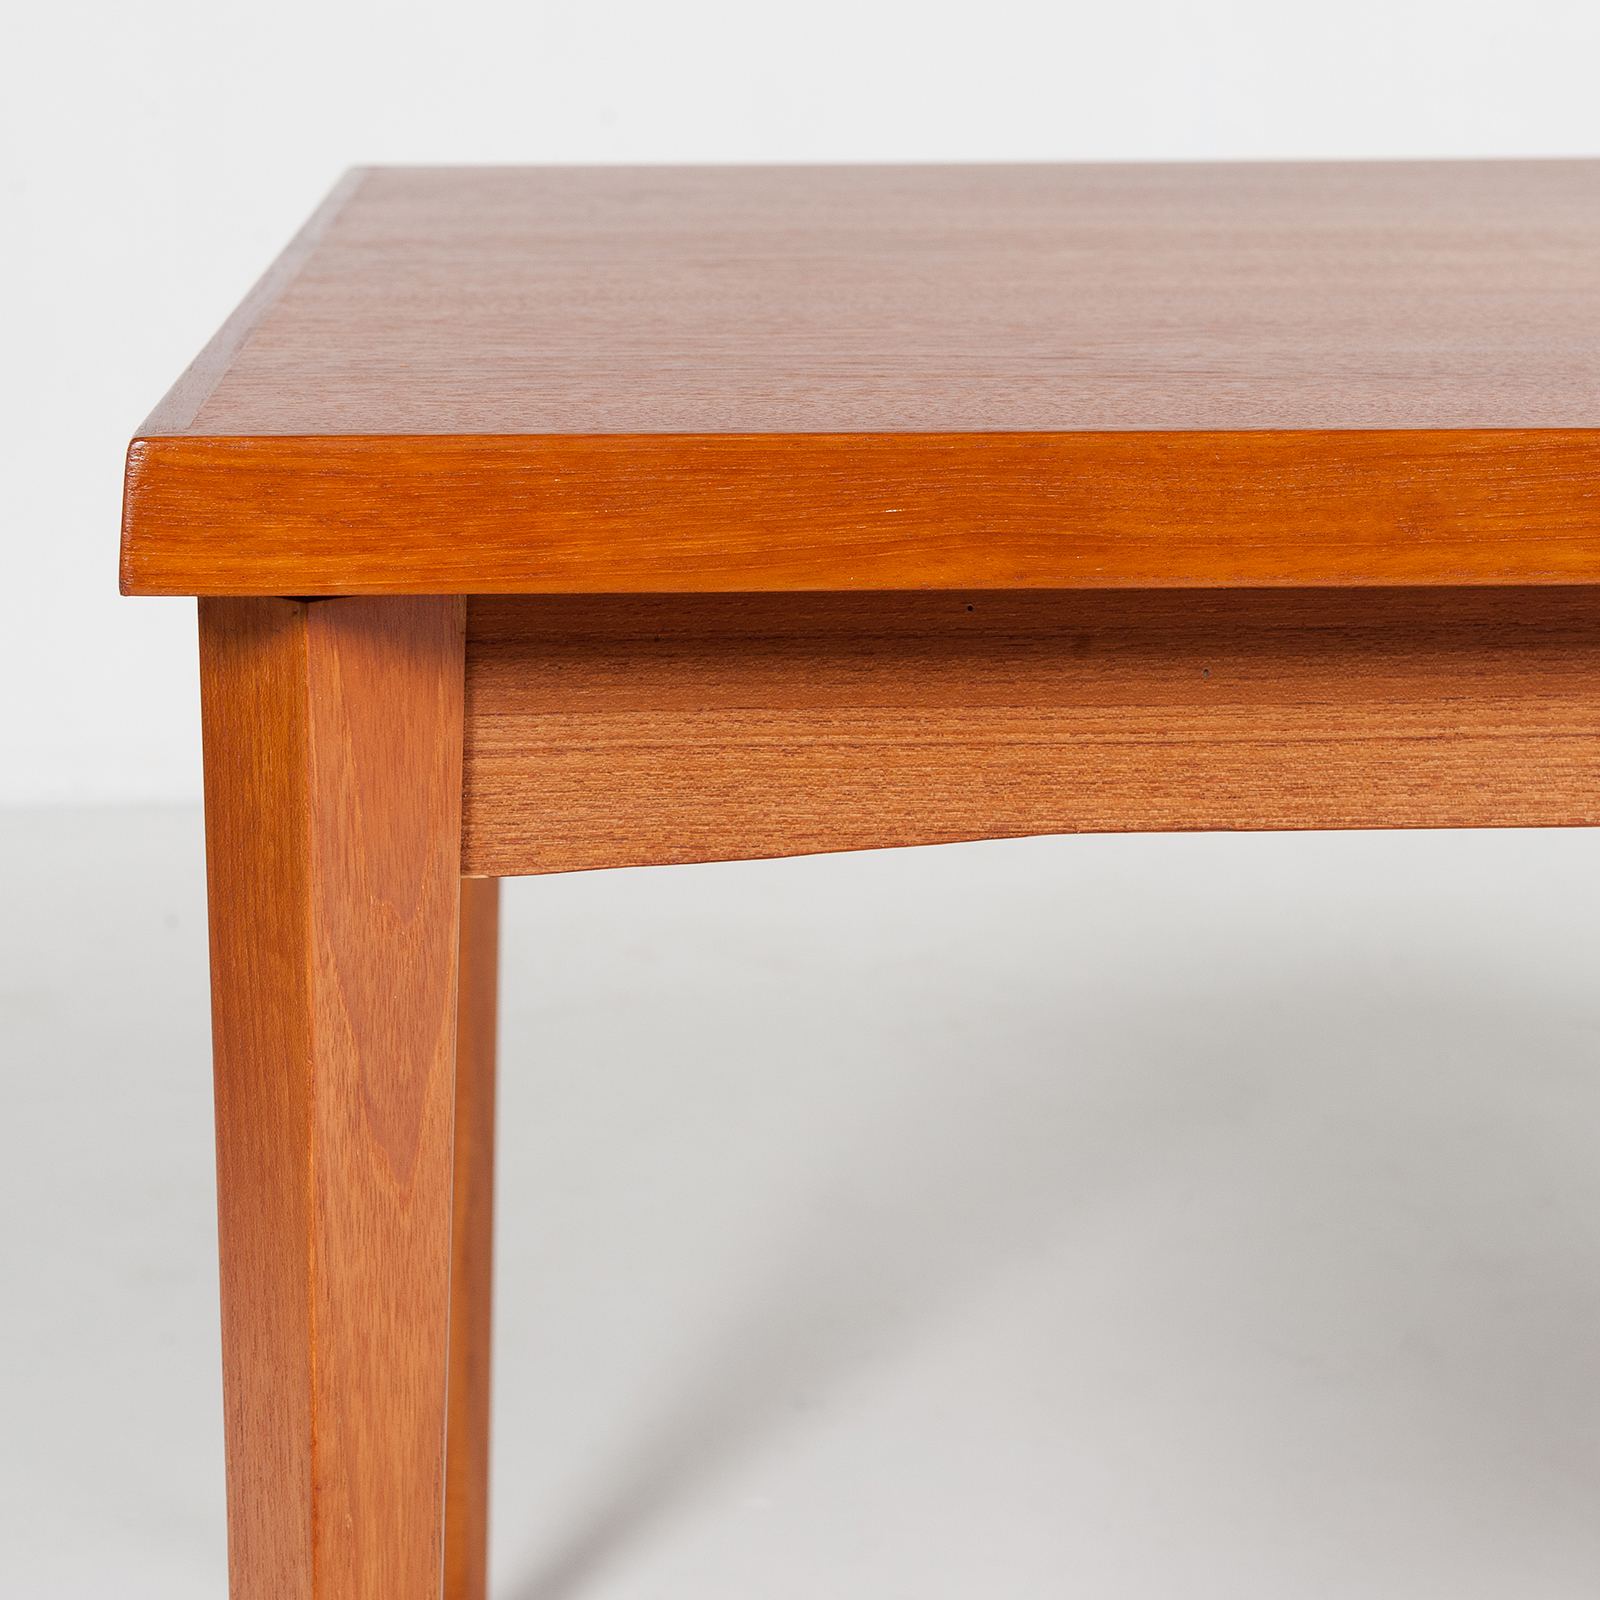 Dining Table In Teak With Concealed Top, 1960s, Denmark19